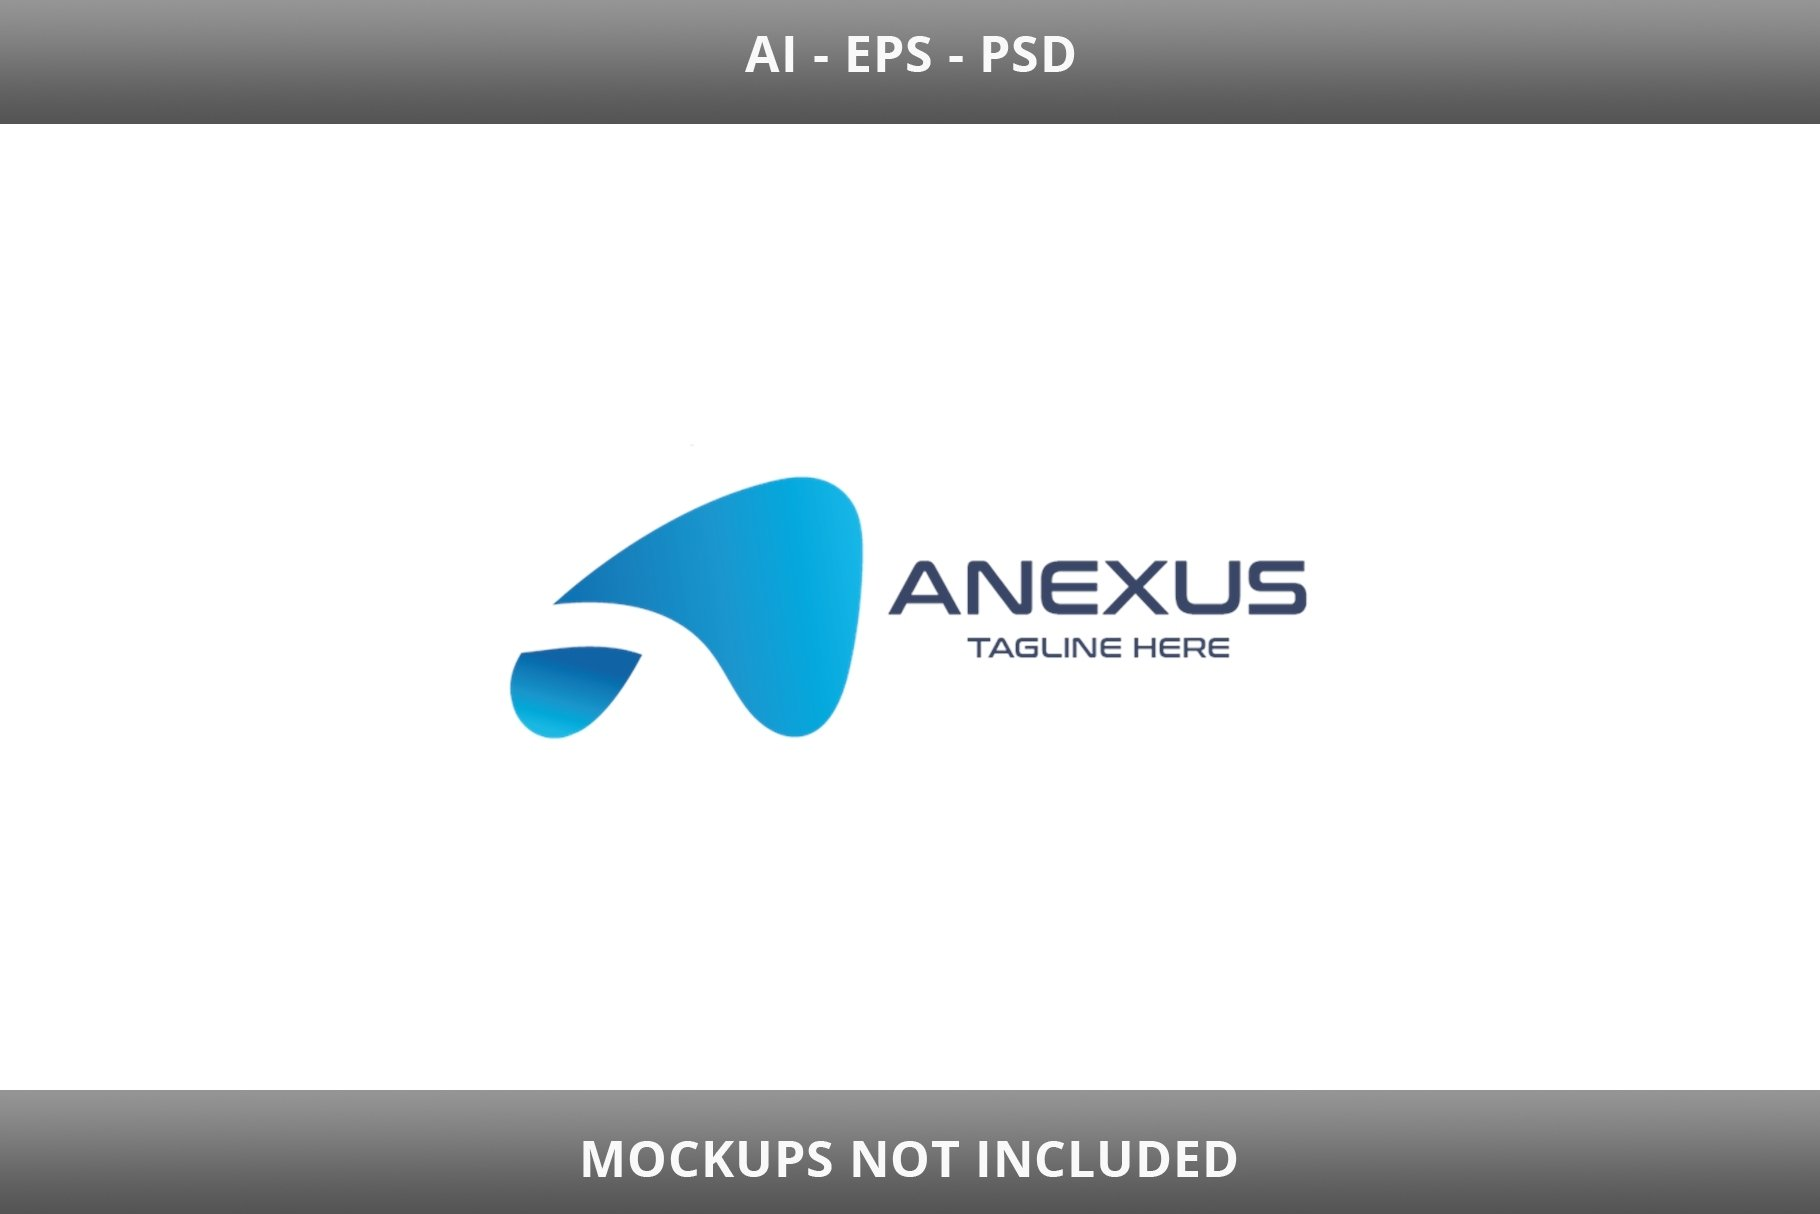 Anexus Letter A Logo example image 2